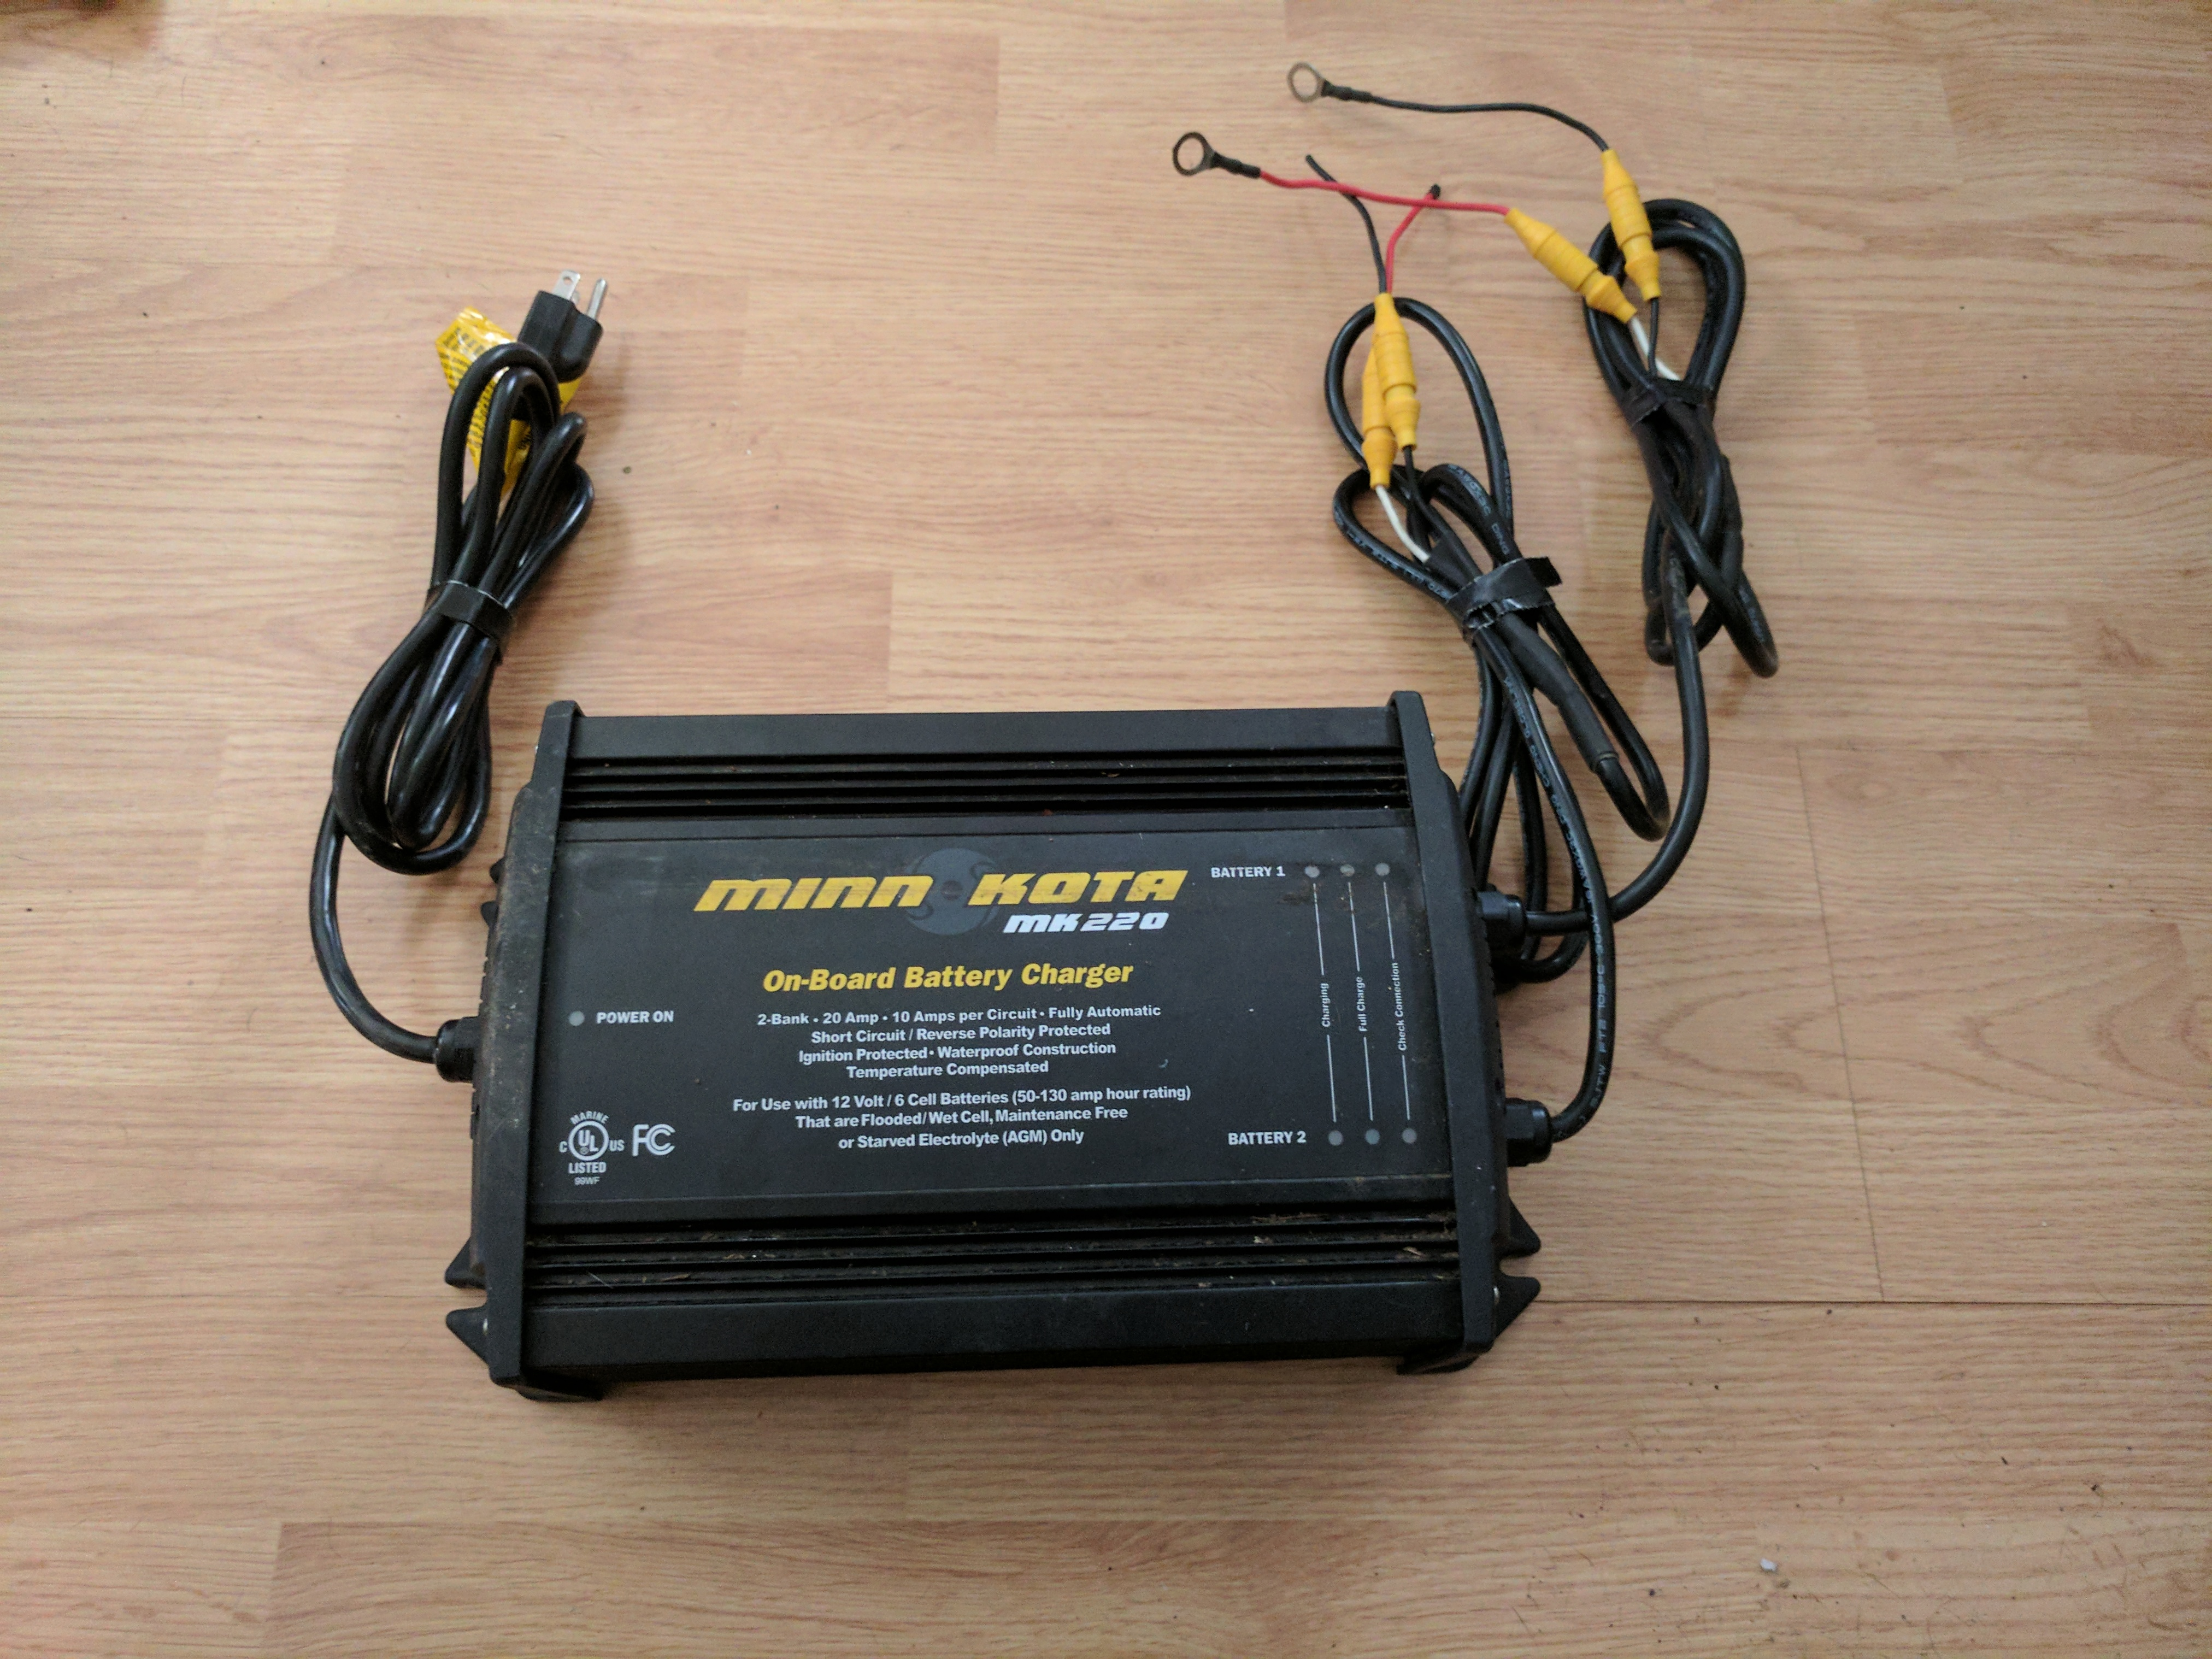 Minn Kota 2 Bank Charger Wiring - Best Charger Photos ... Minn Kota Battery Charger Wiring Diagram on